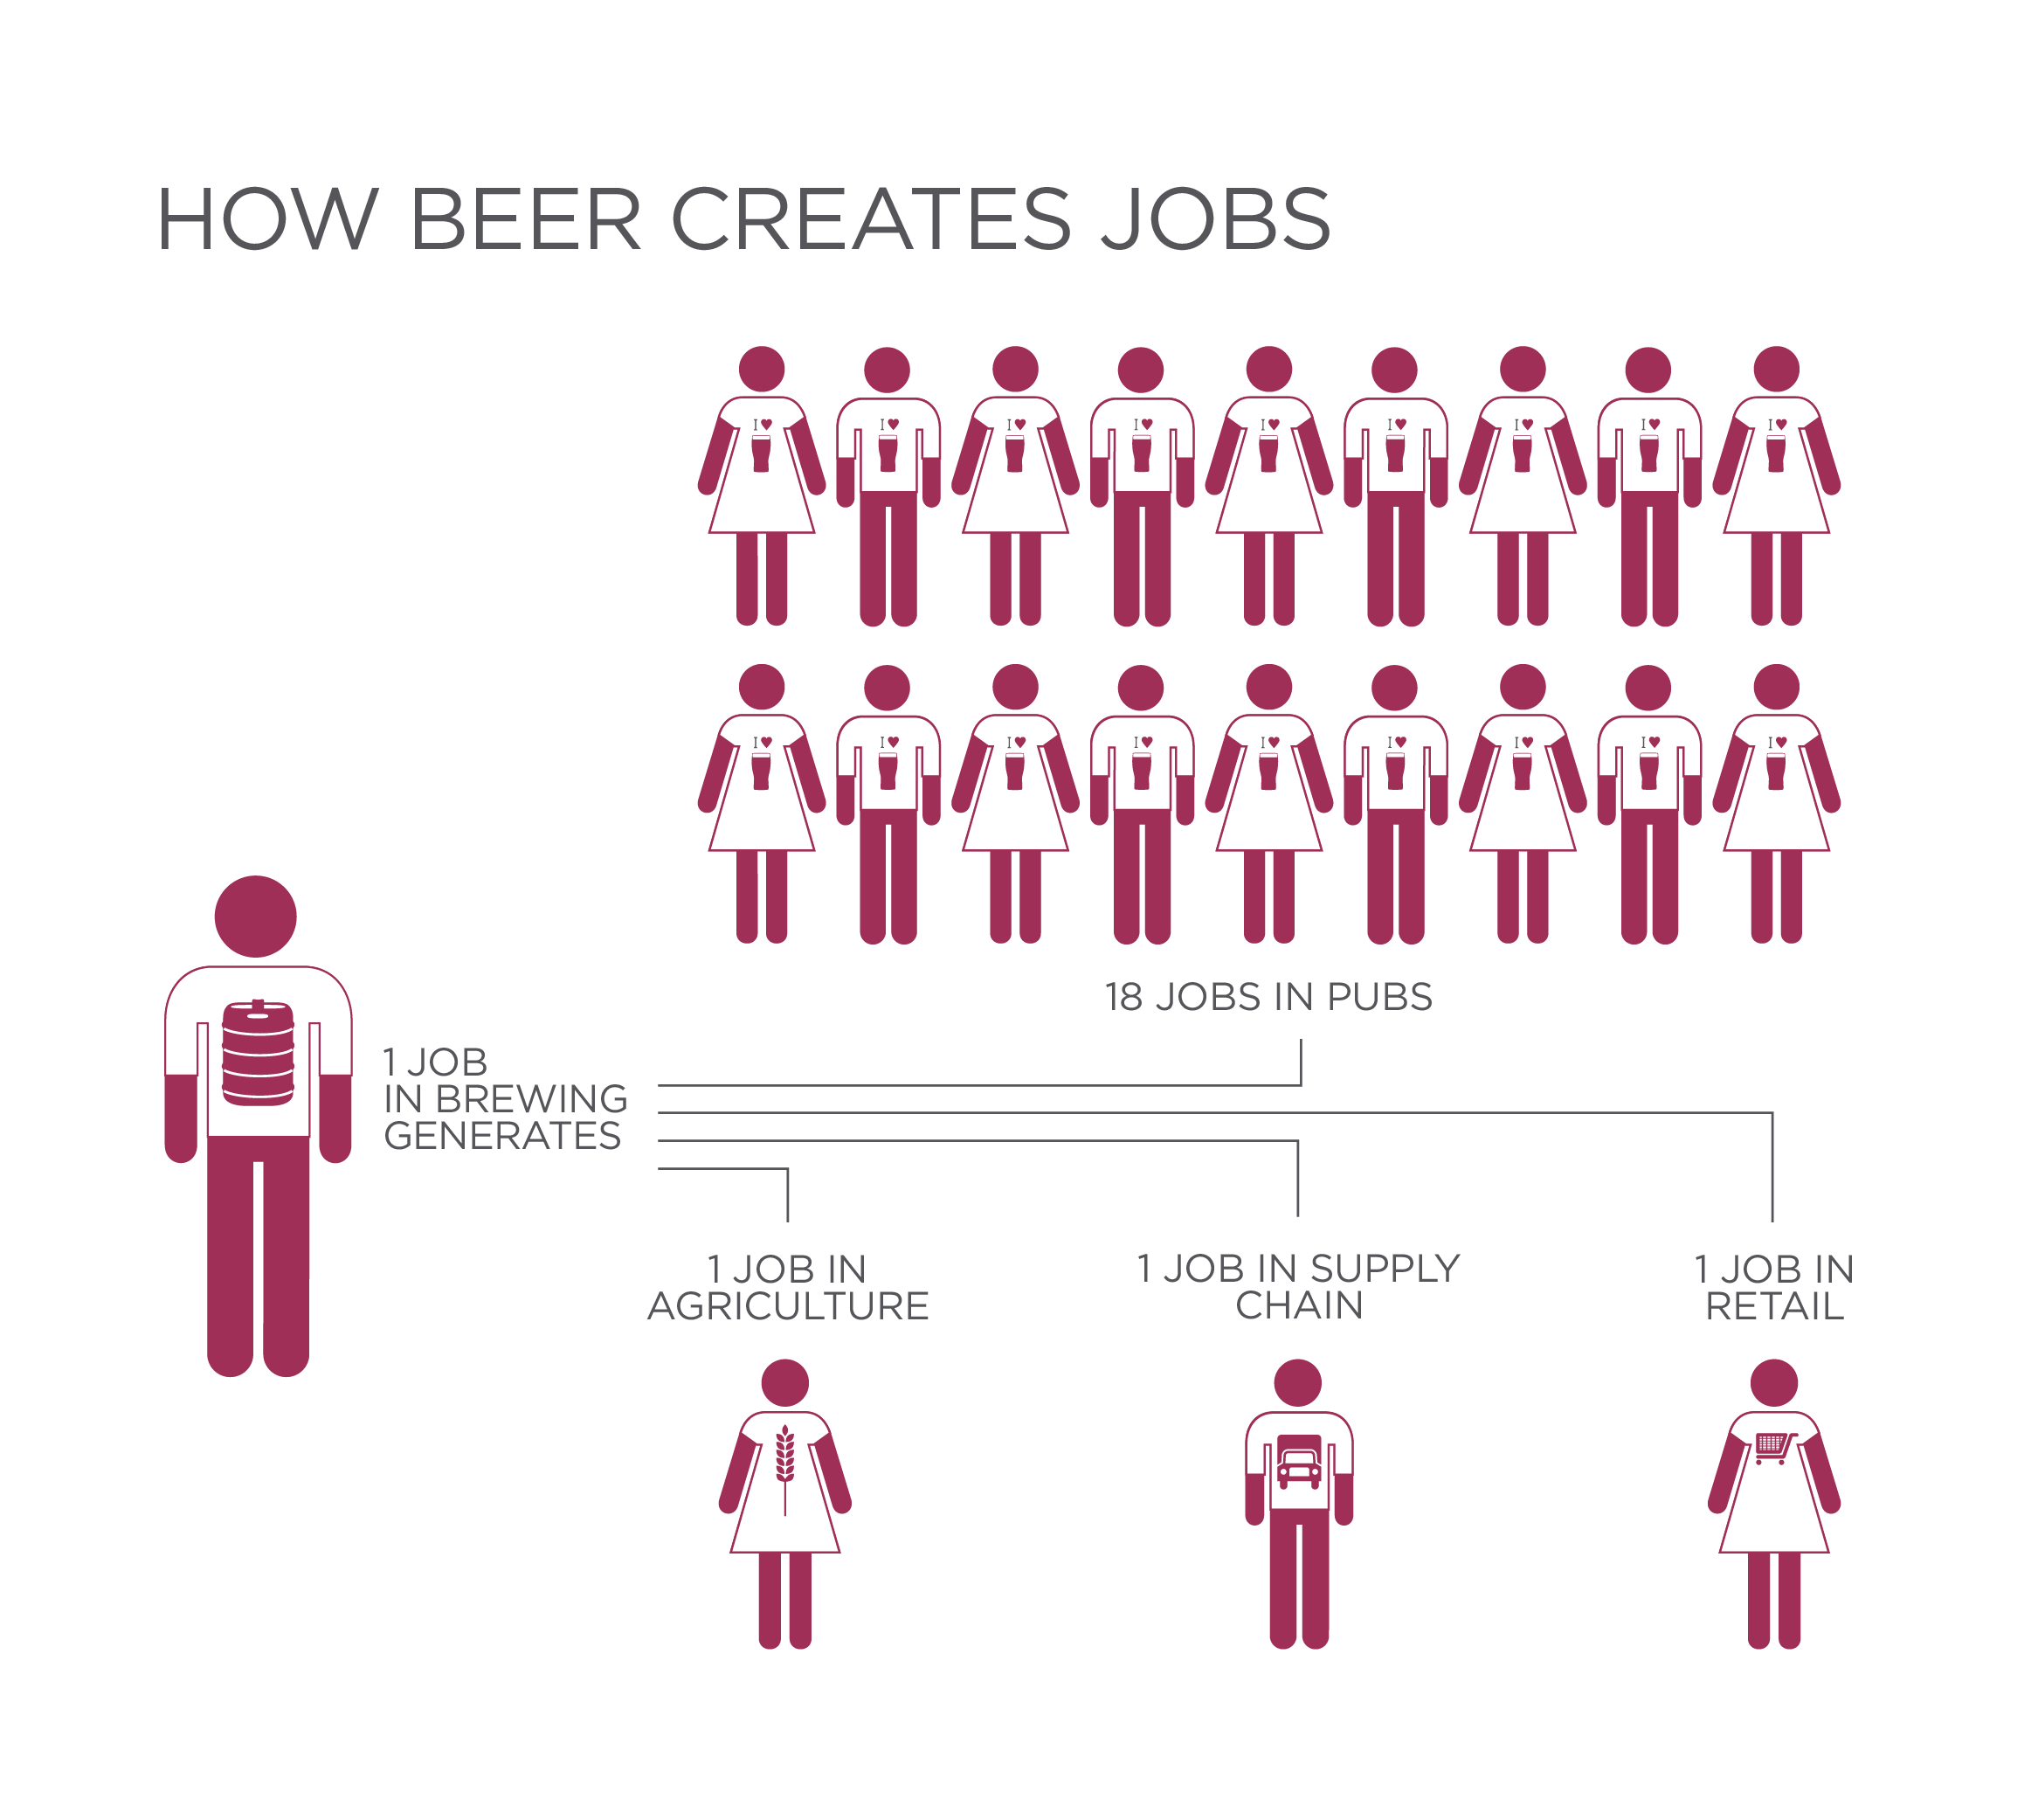 beer and pub jobs